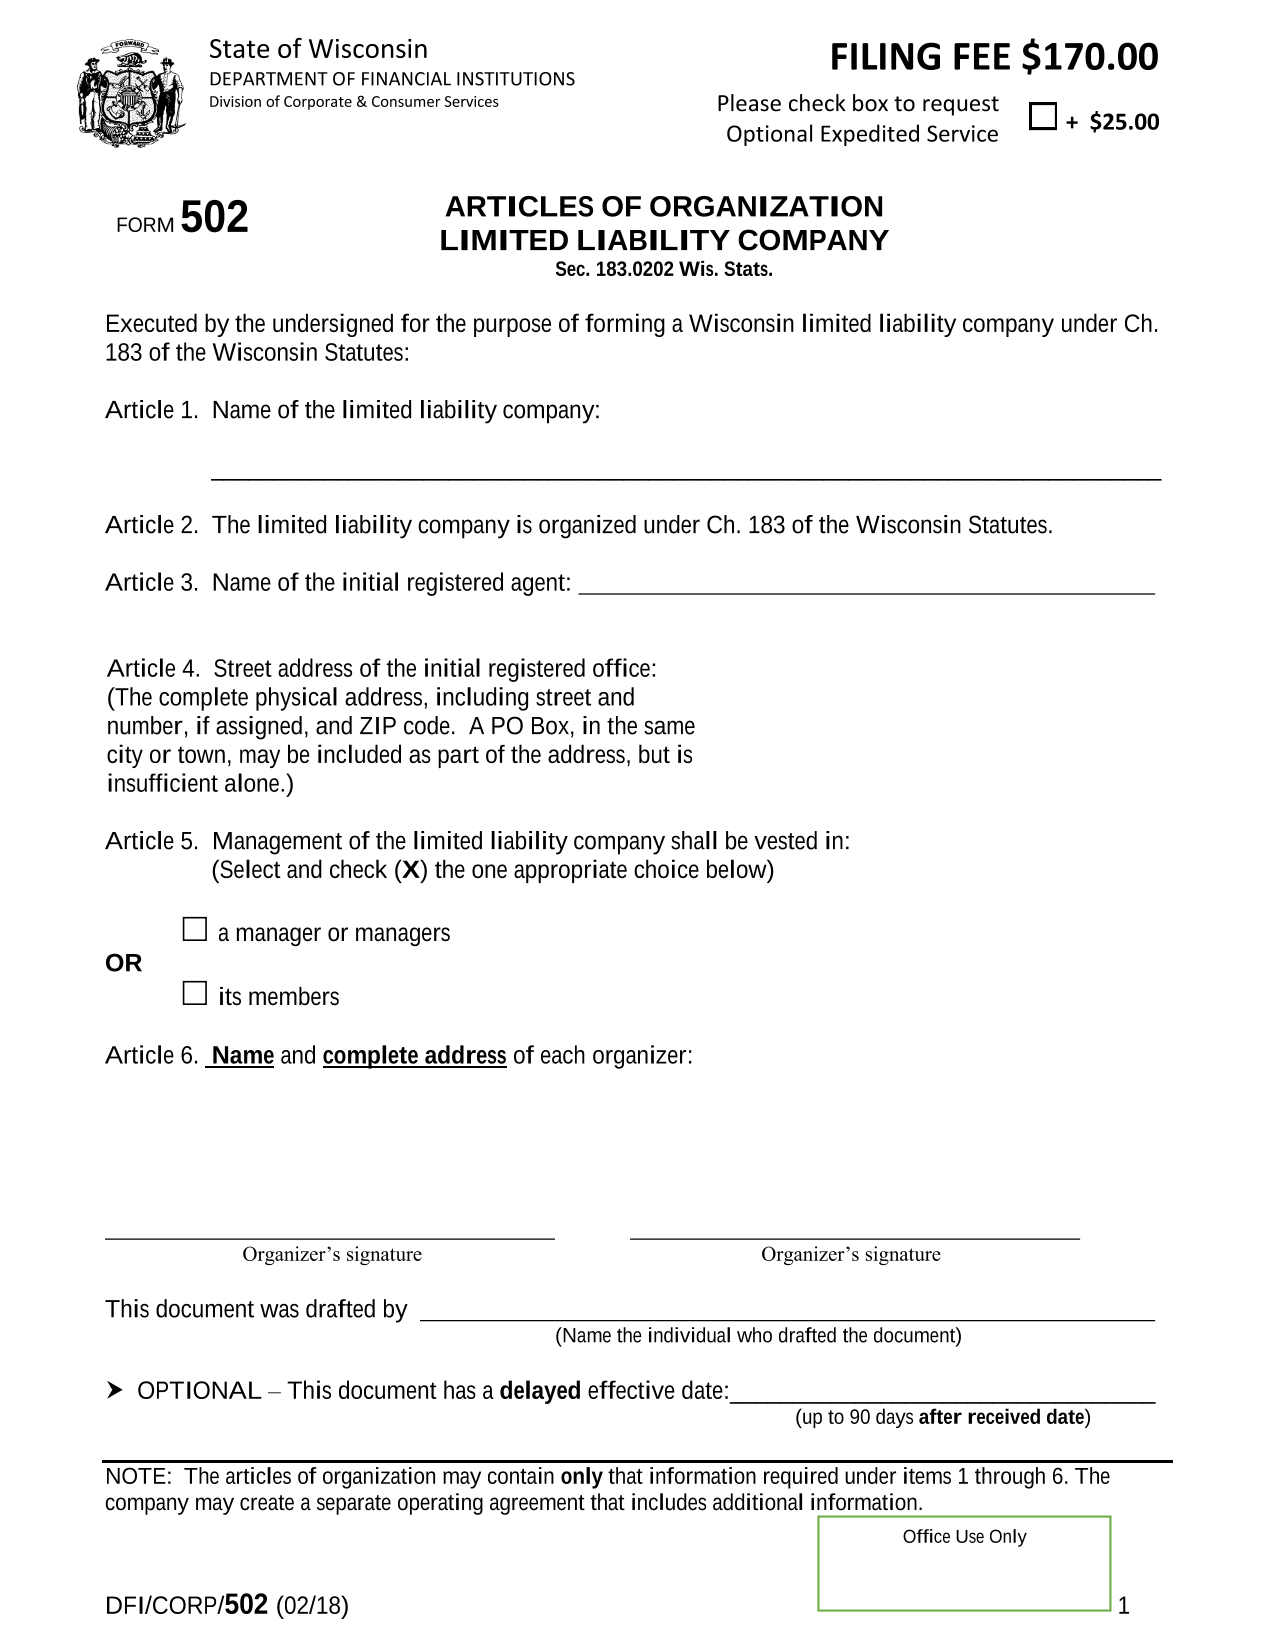 Wisconsin LLC Articles of Organization